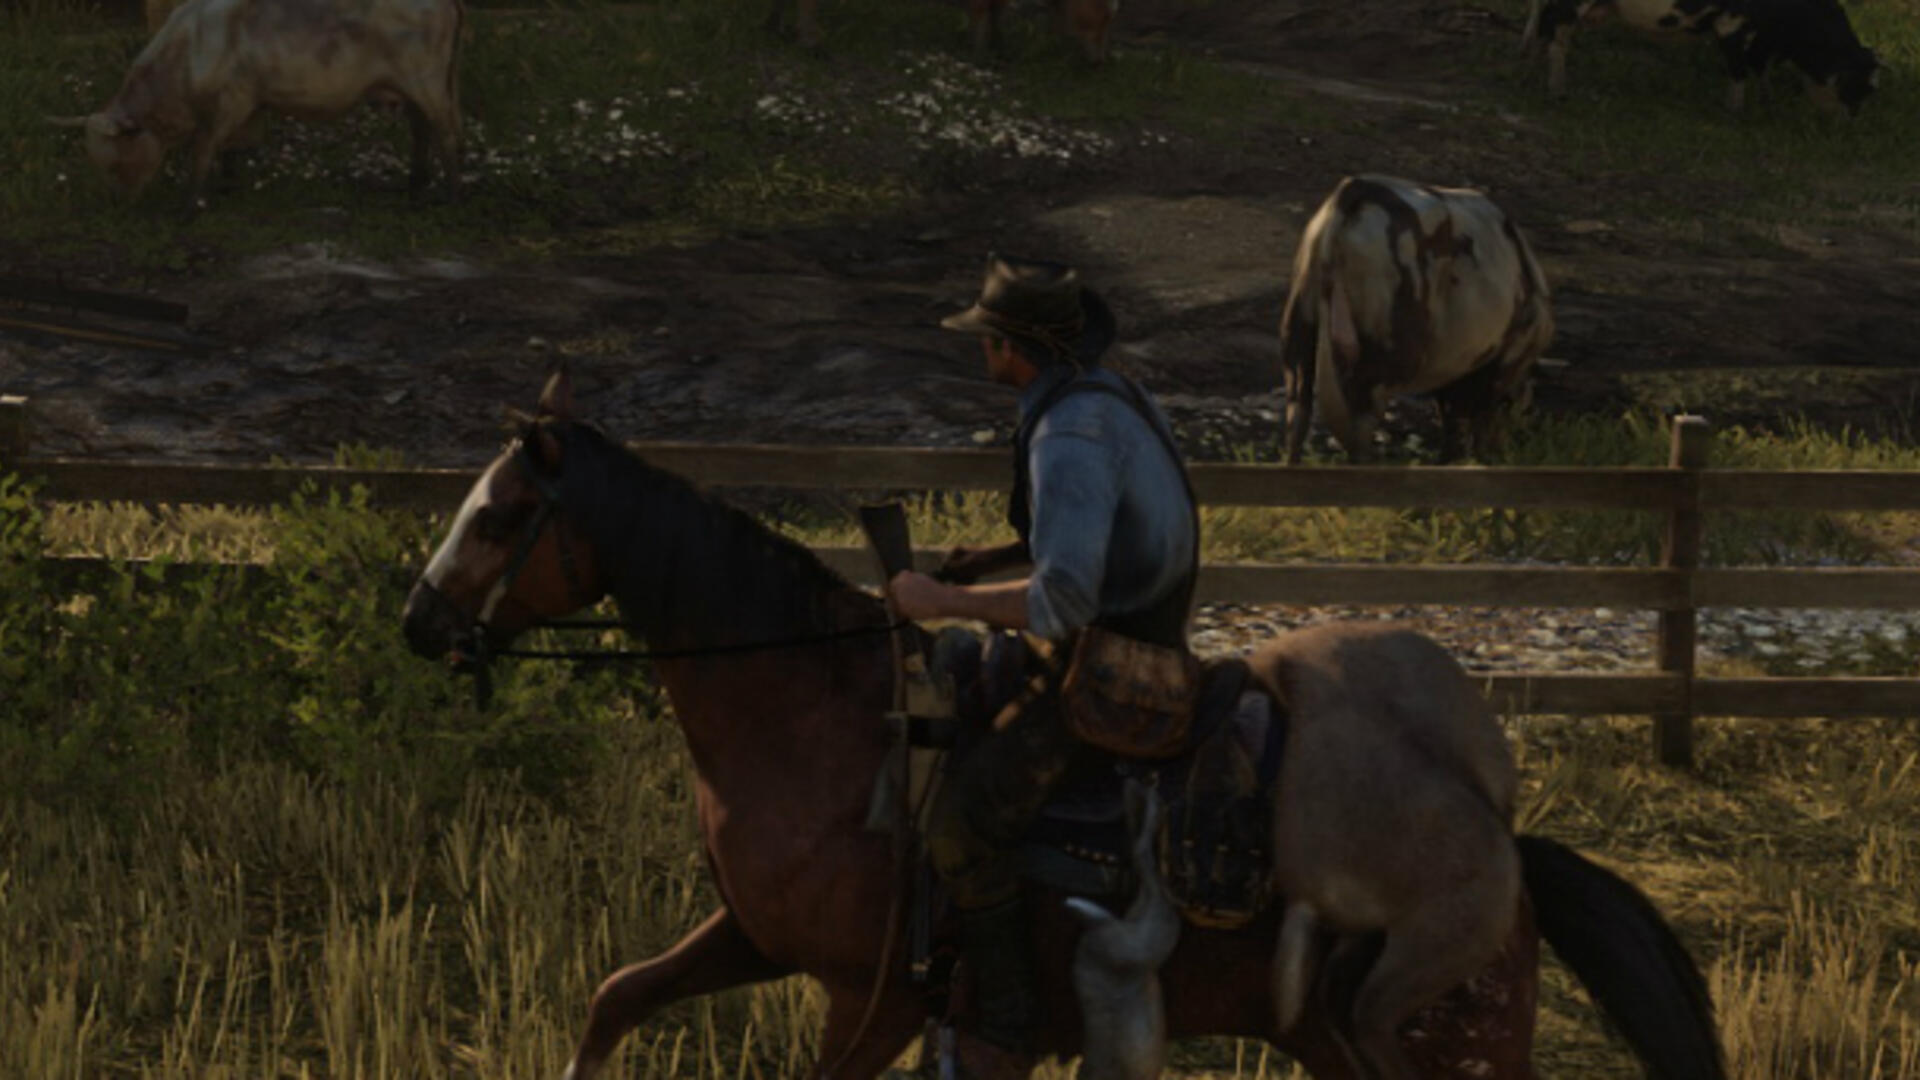 Red Dead Redemption 2 Could Get PC Version and Even VR Support Based on Official Companion App